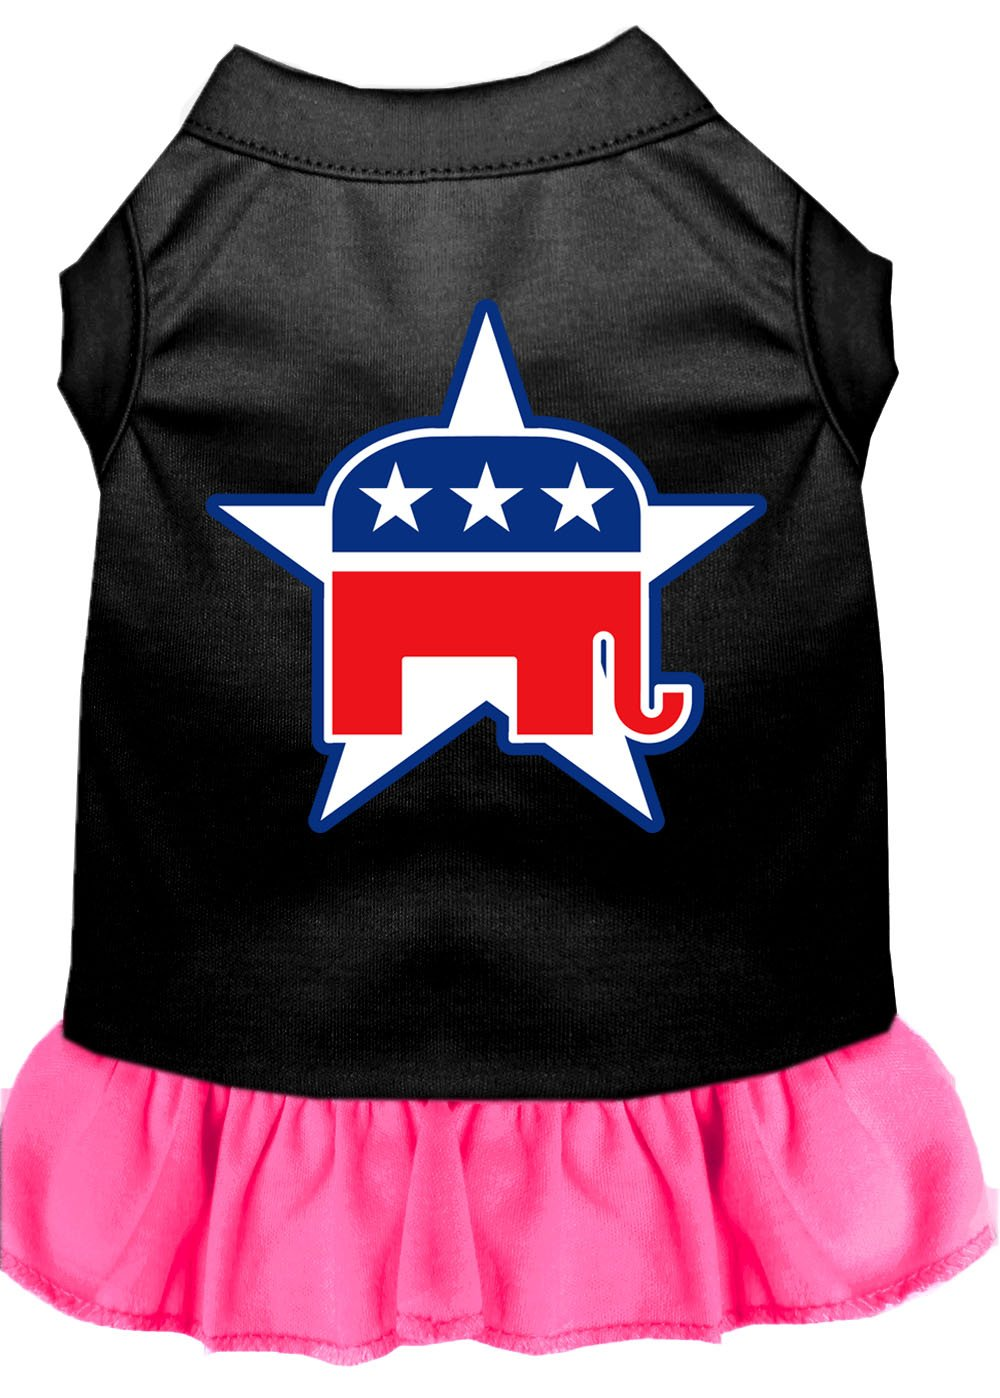 Republican Dog Dress Outfit pink